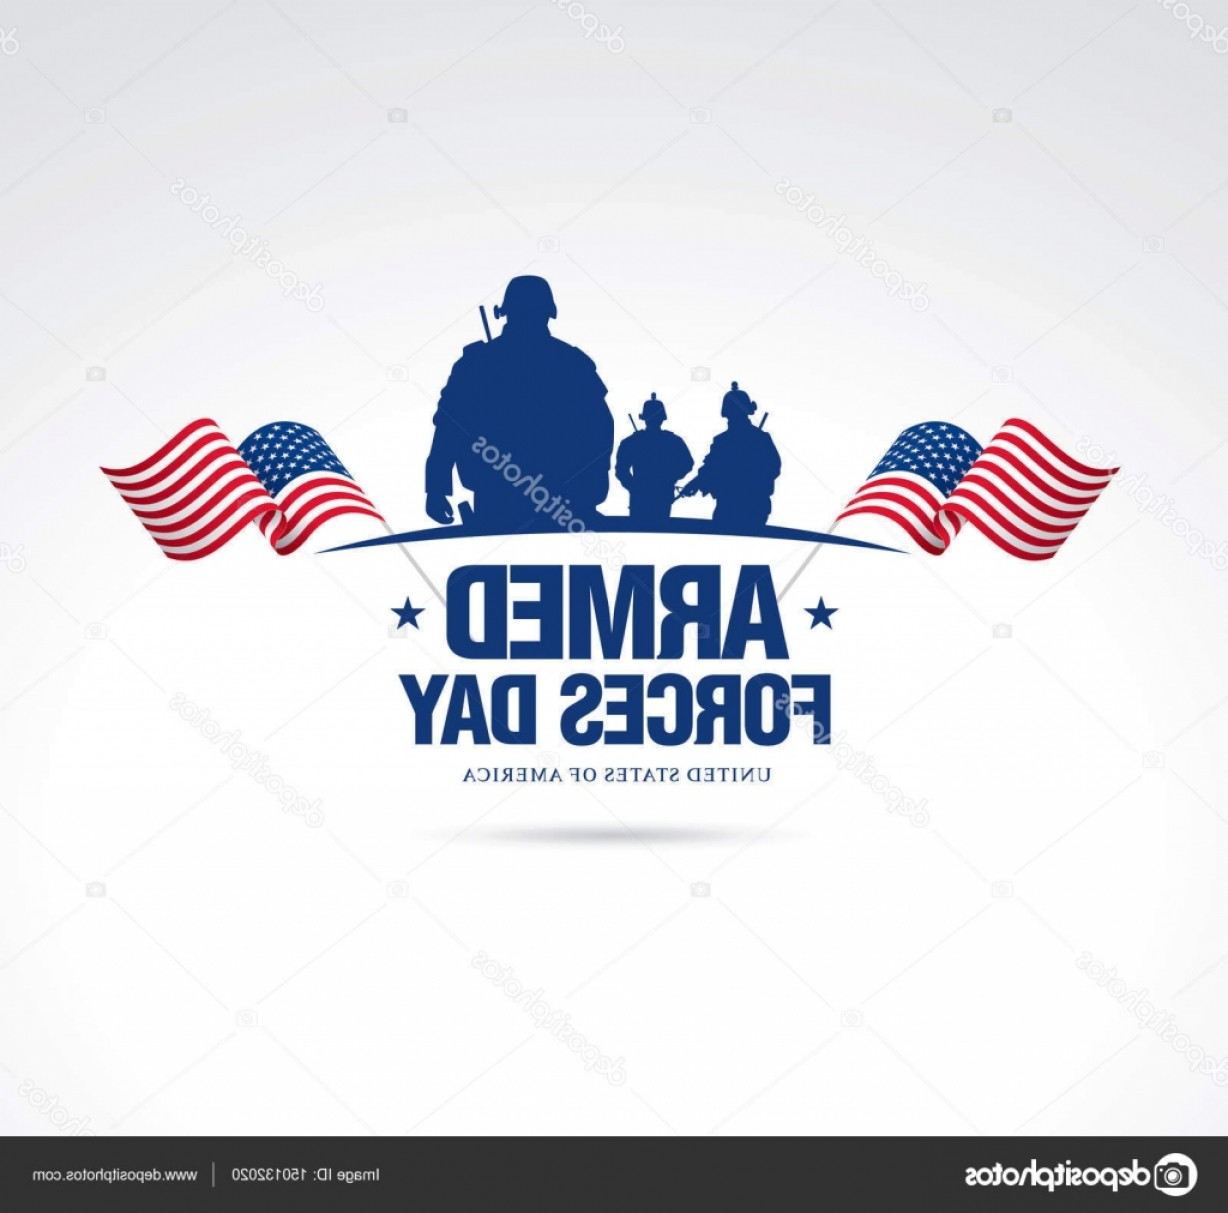 United States Armed Forces Logo Vector: Stock Illustration Armed Forces Day Banner